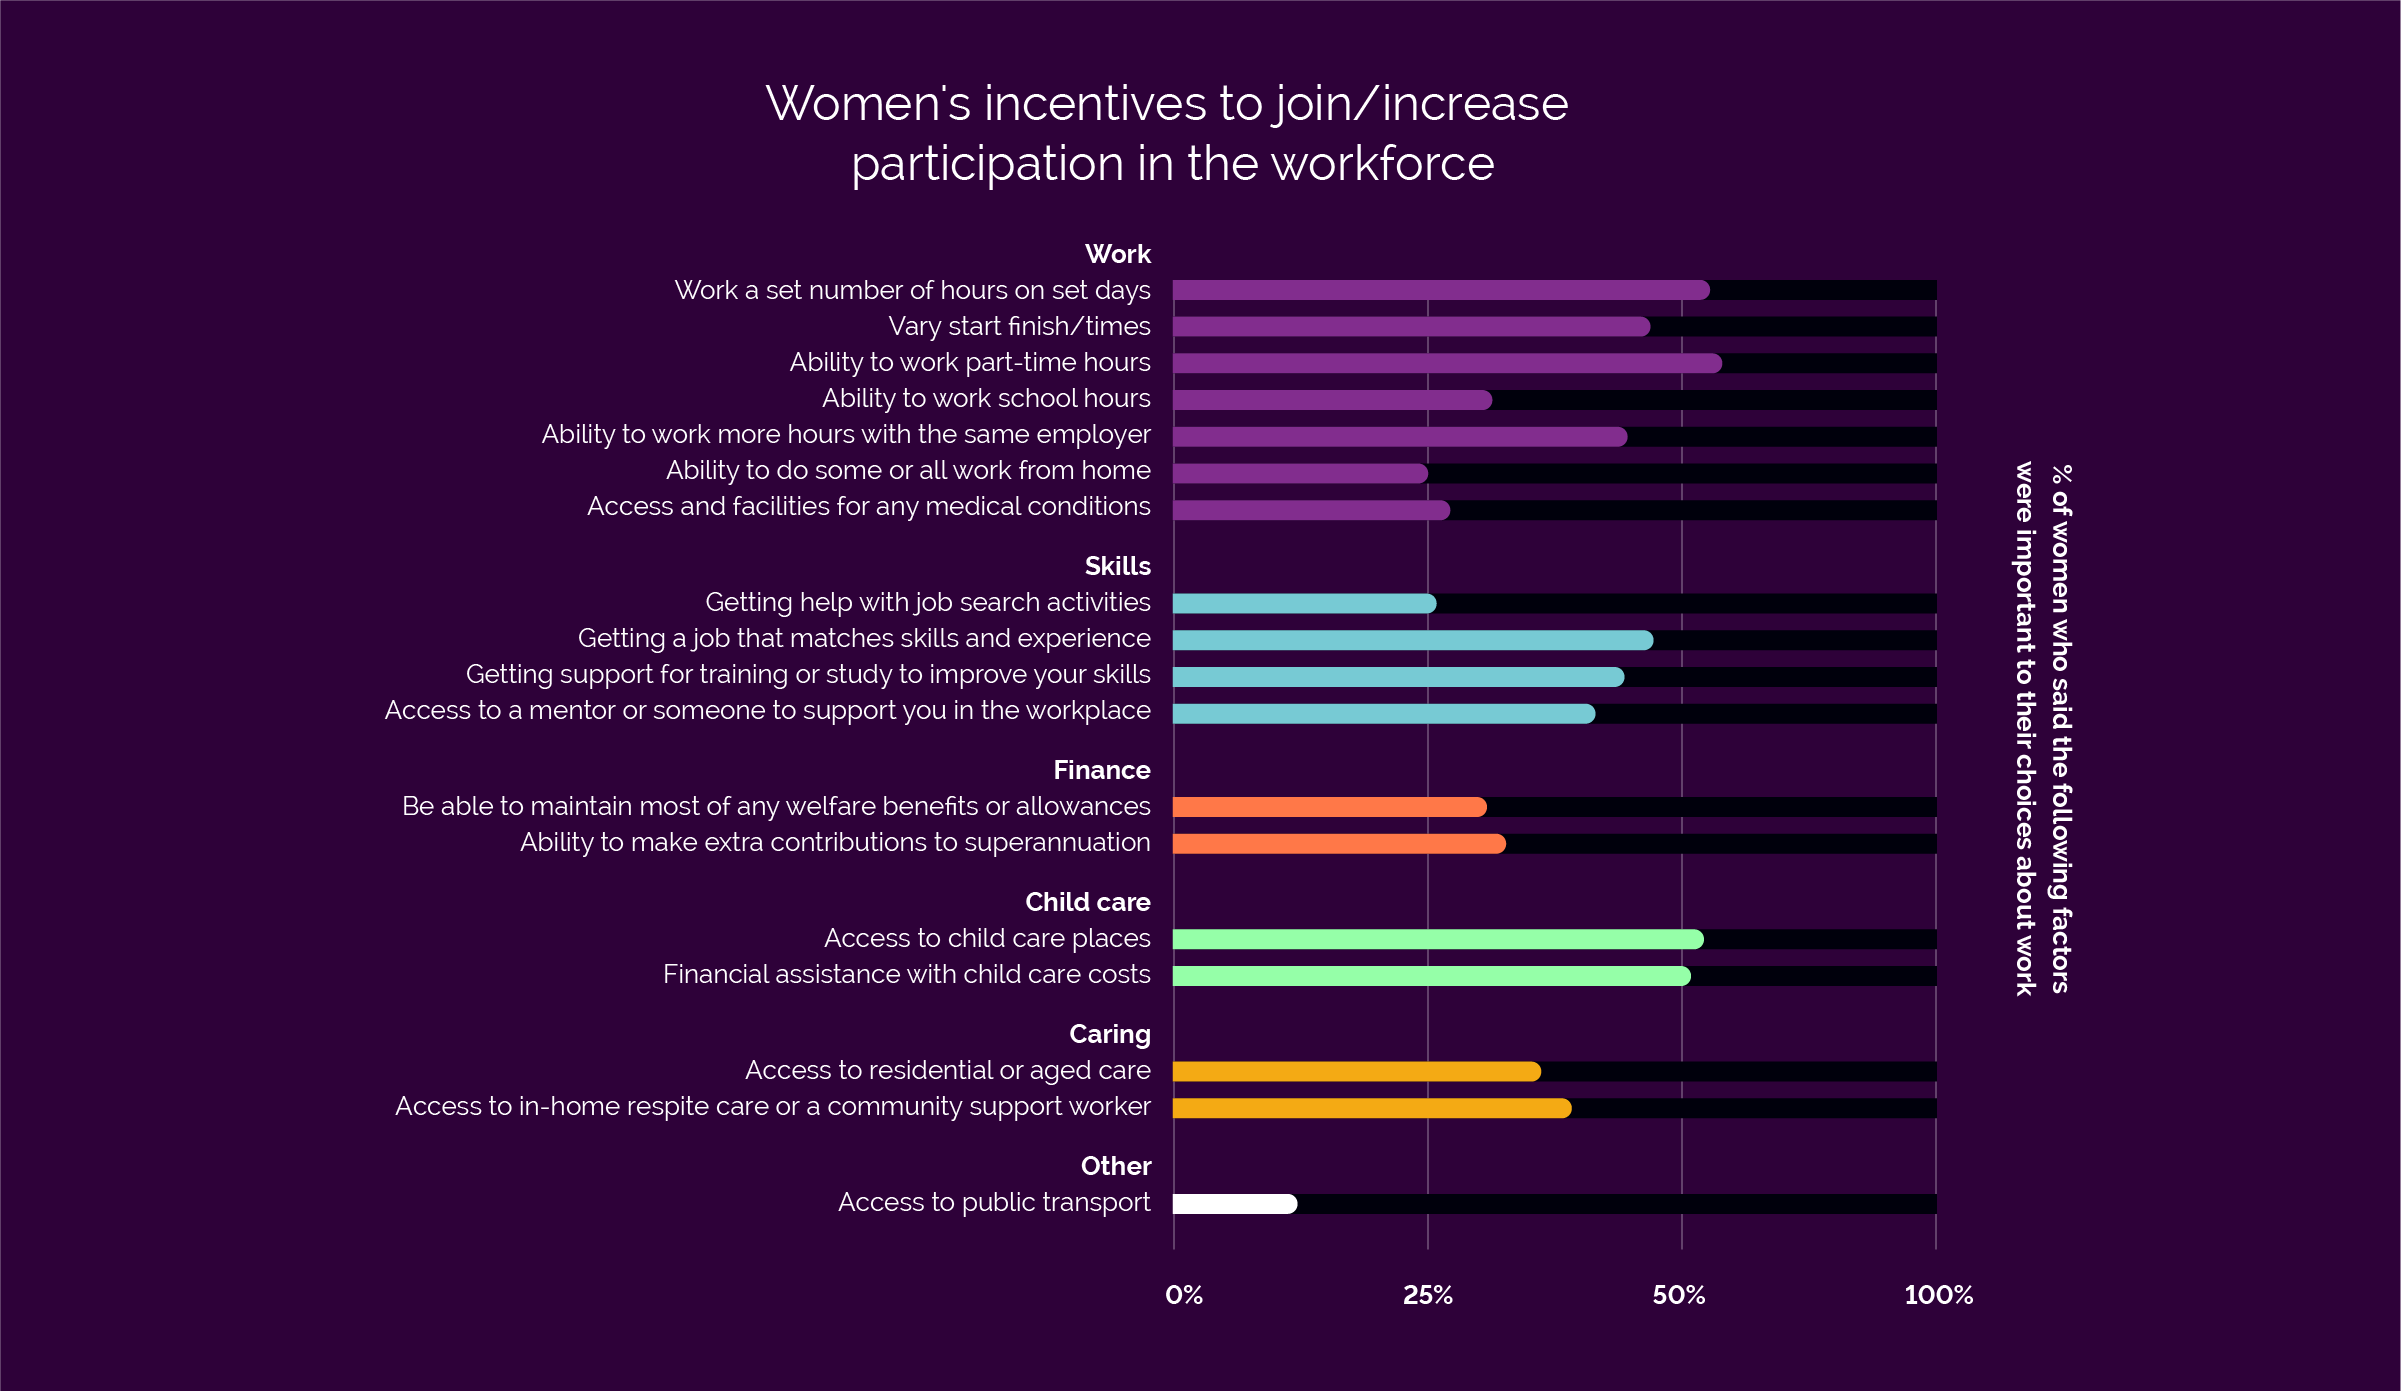 Women's incentives to join/increase participation in the workforce.